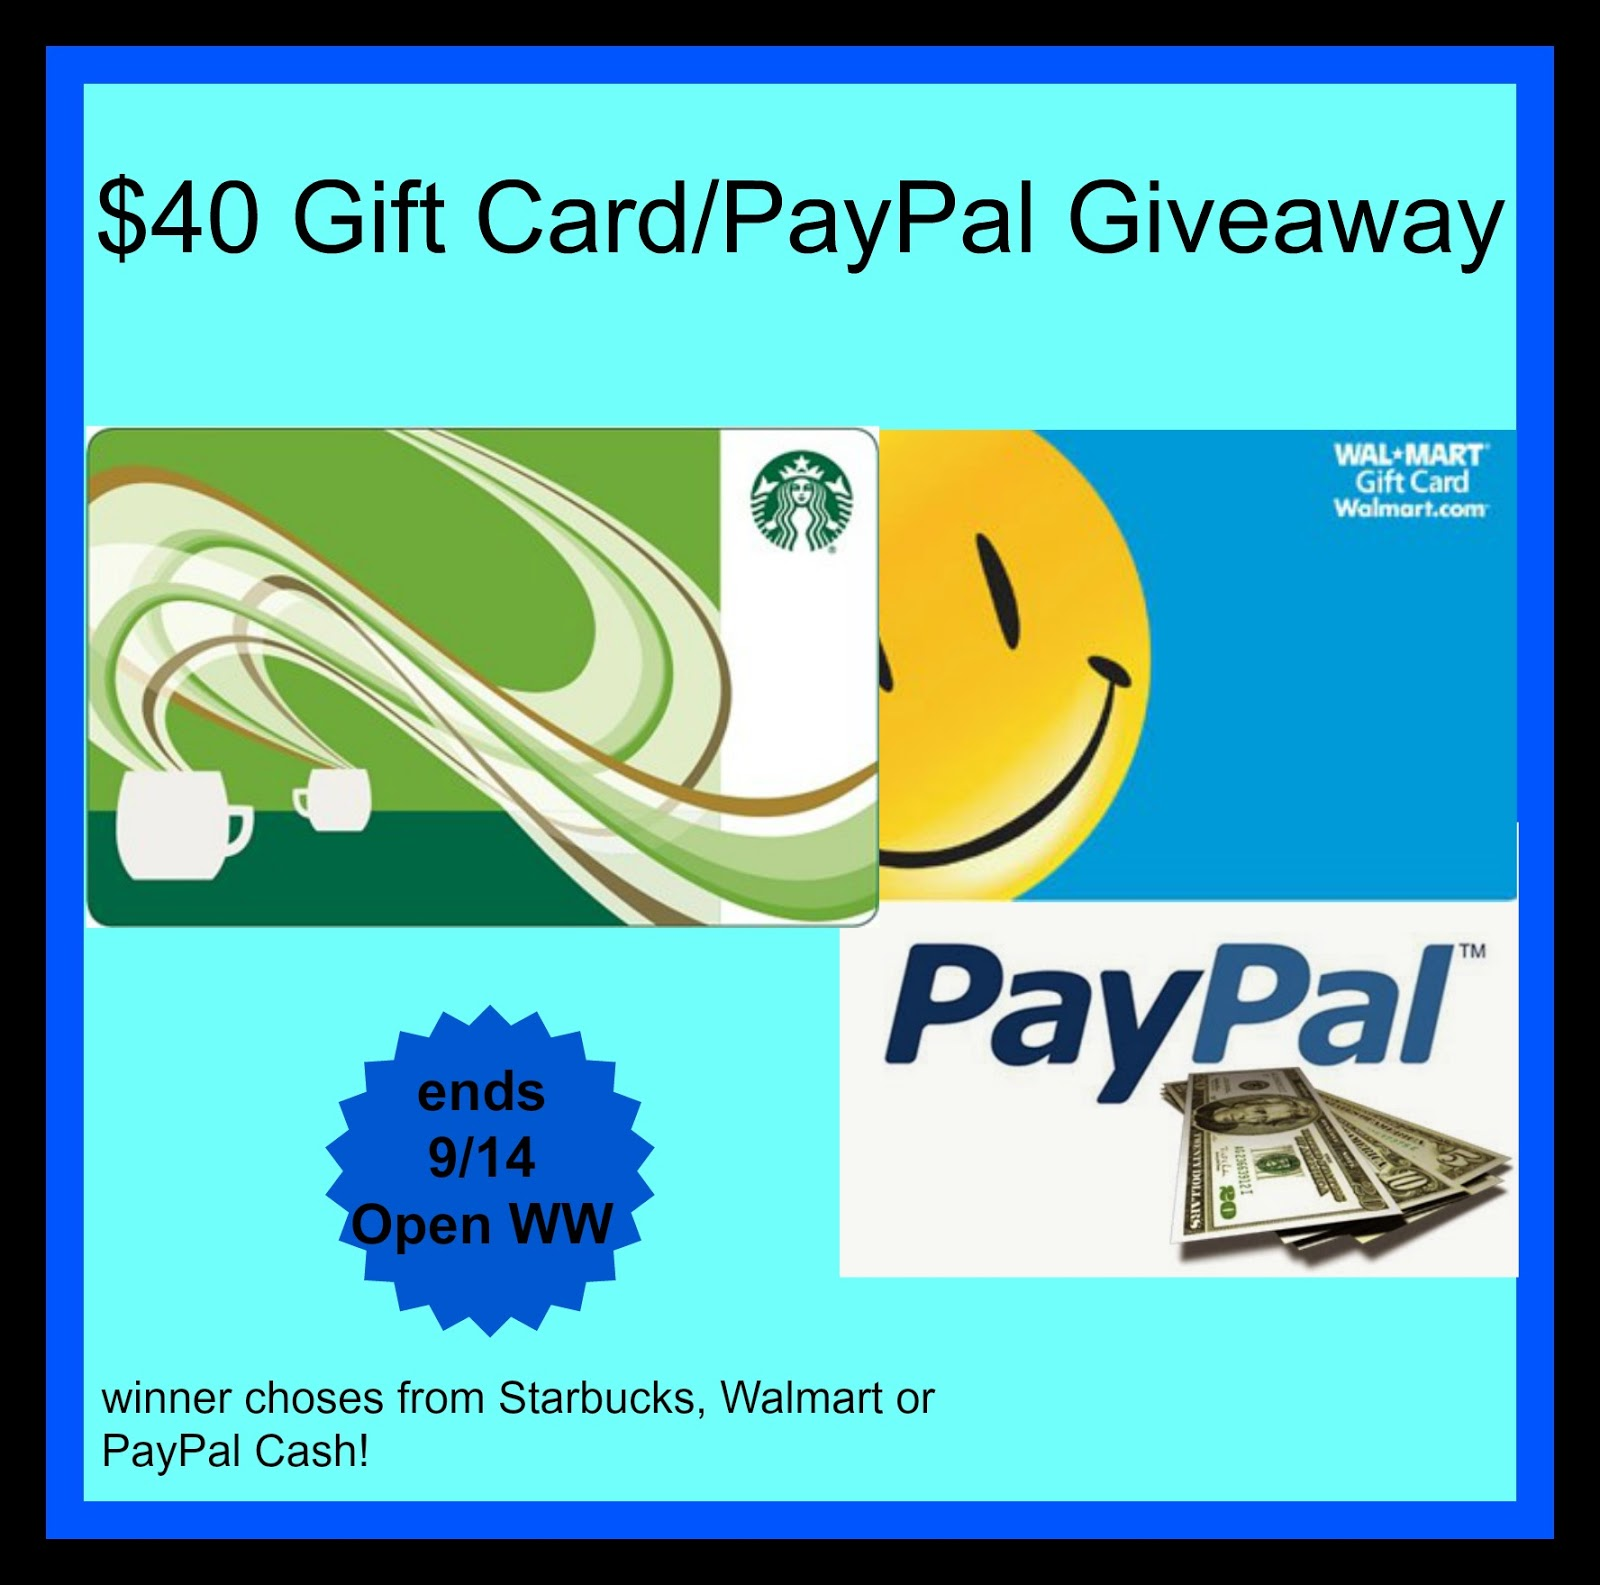 Top Notch Material: $40 Gift Card/PayPal Giveaway